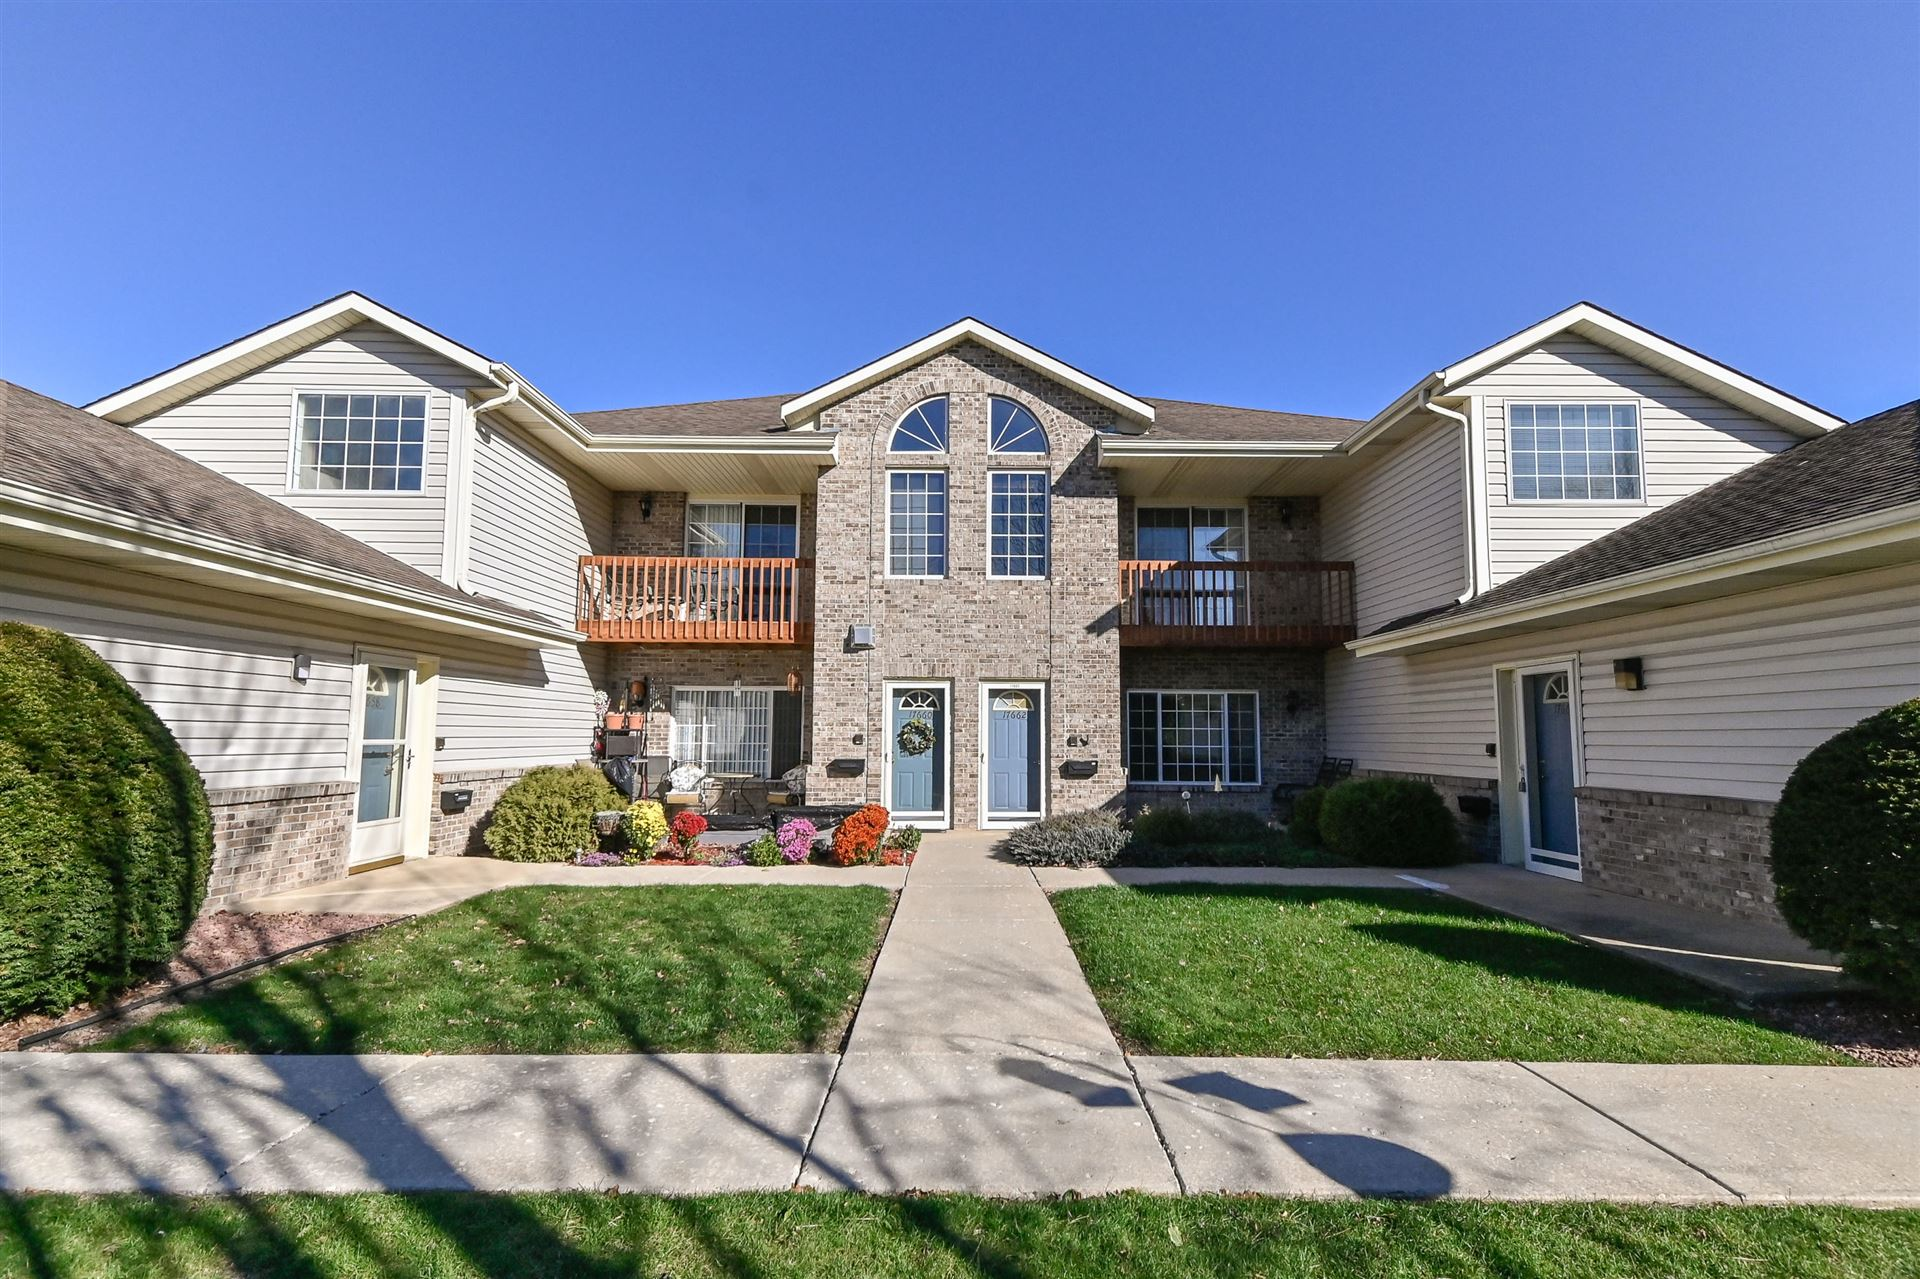 17664 W Lincoln  Ave #8, New Berlin, WI 53146 - #: 1712820